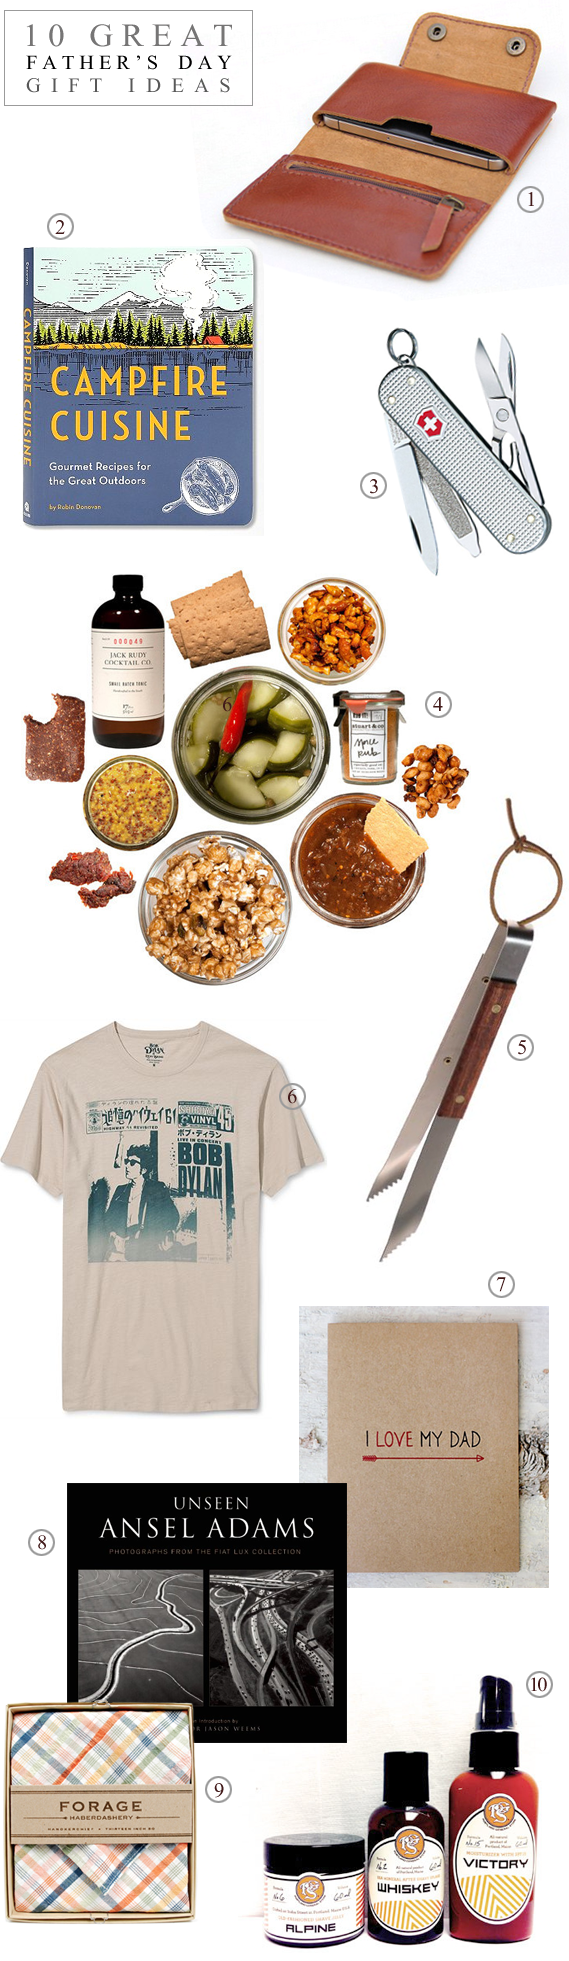 10 Great Father's Day Gift Ideas with Bubby and Bean